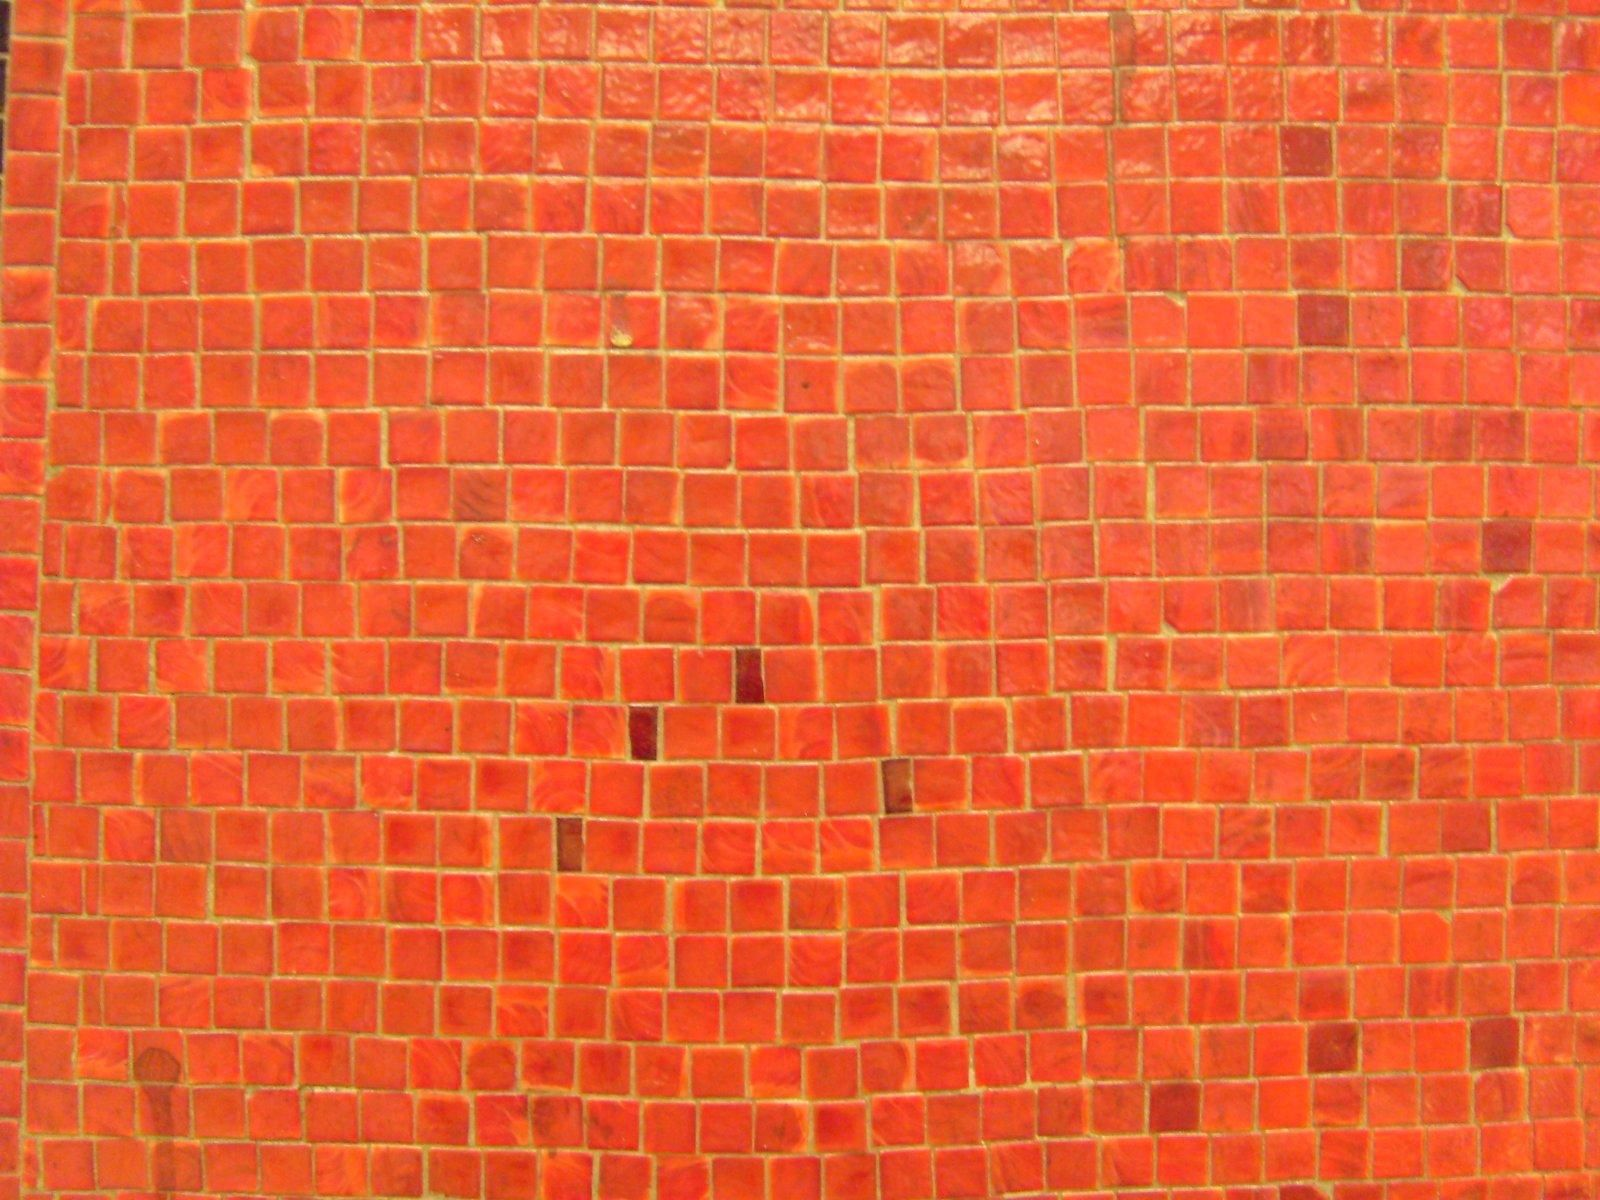 File:Orange mosaic walljpg - Wikimedia Commons